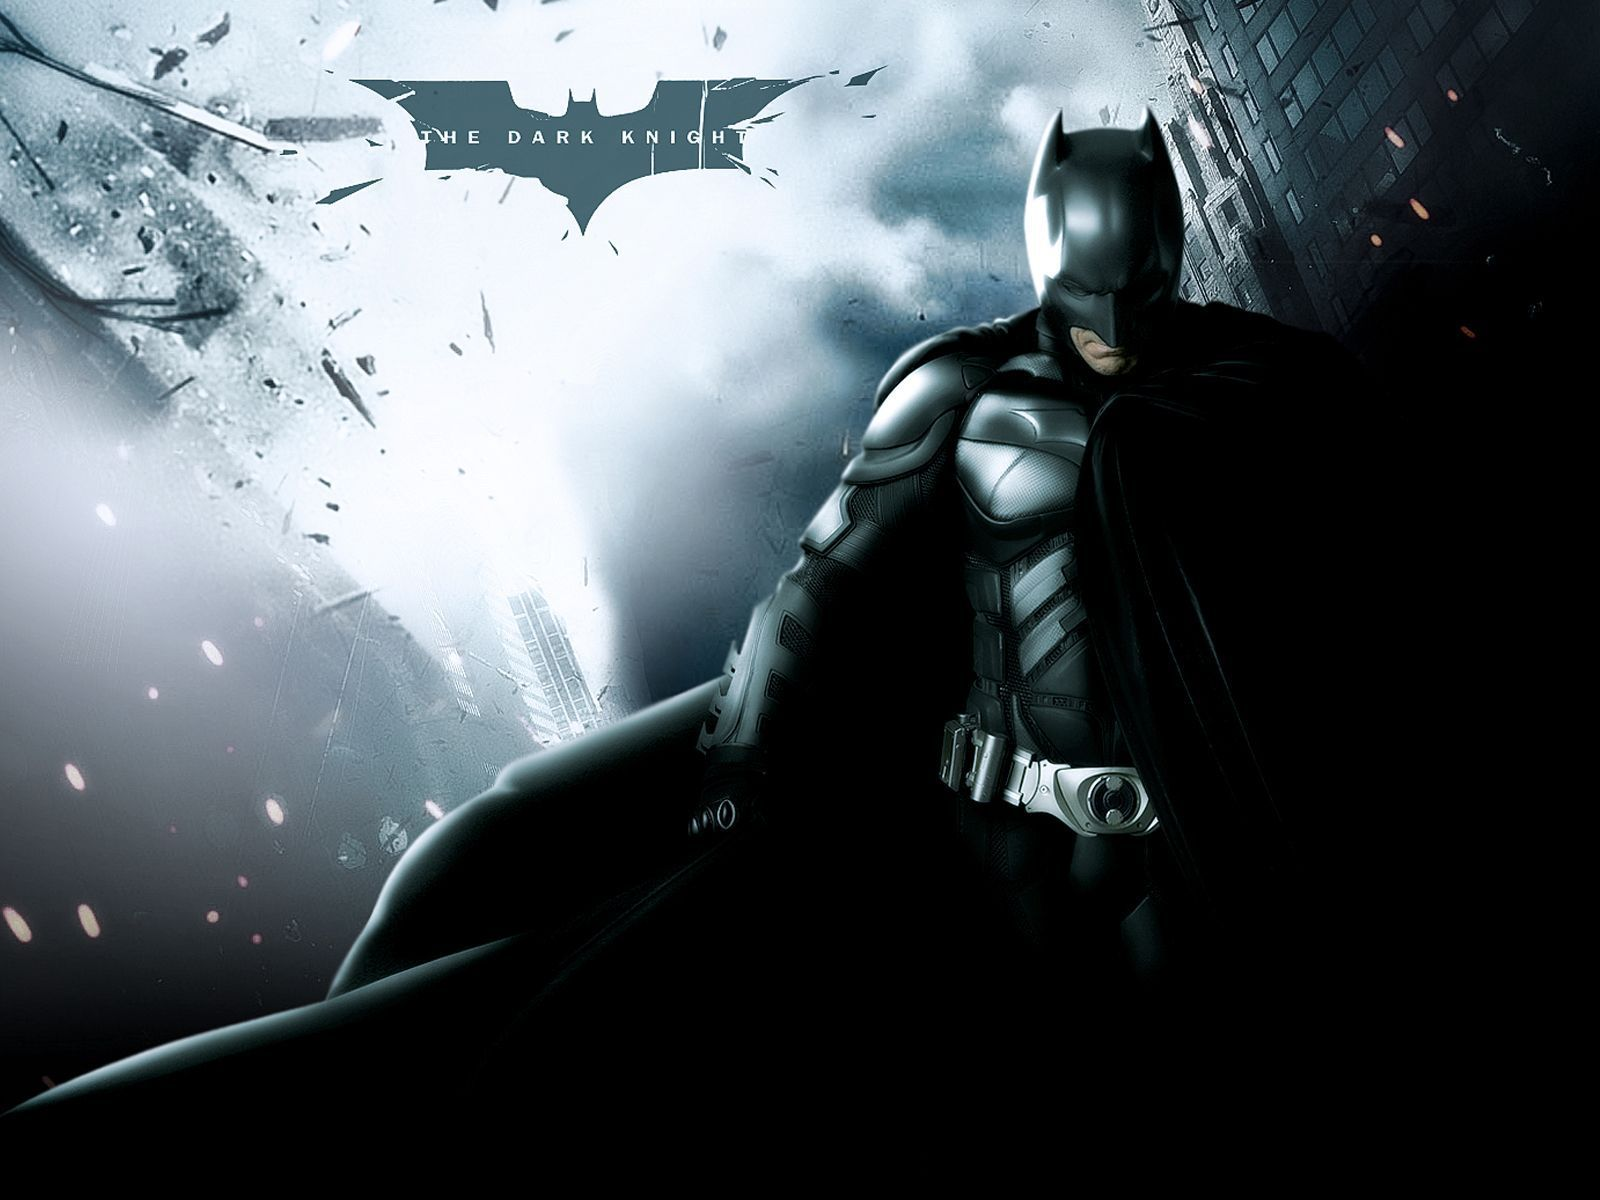 Dark Knight Hd Wallpapers Top Free Dark Knight Hd Backgrounds Wallpaperaccess